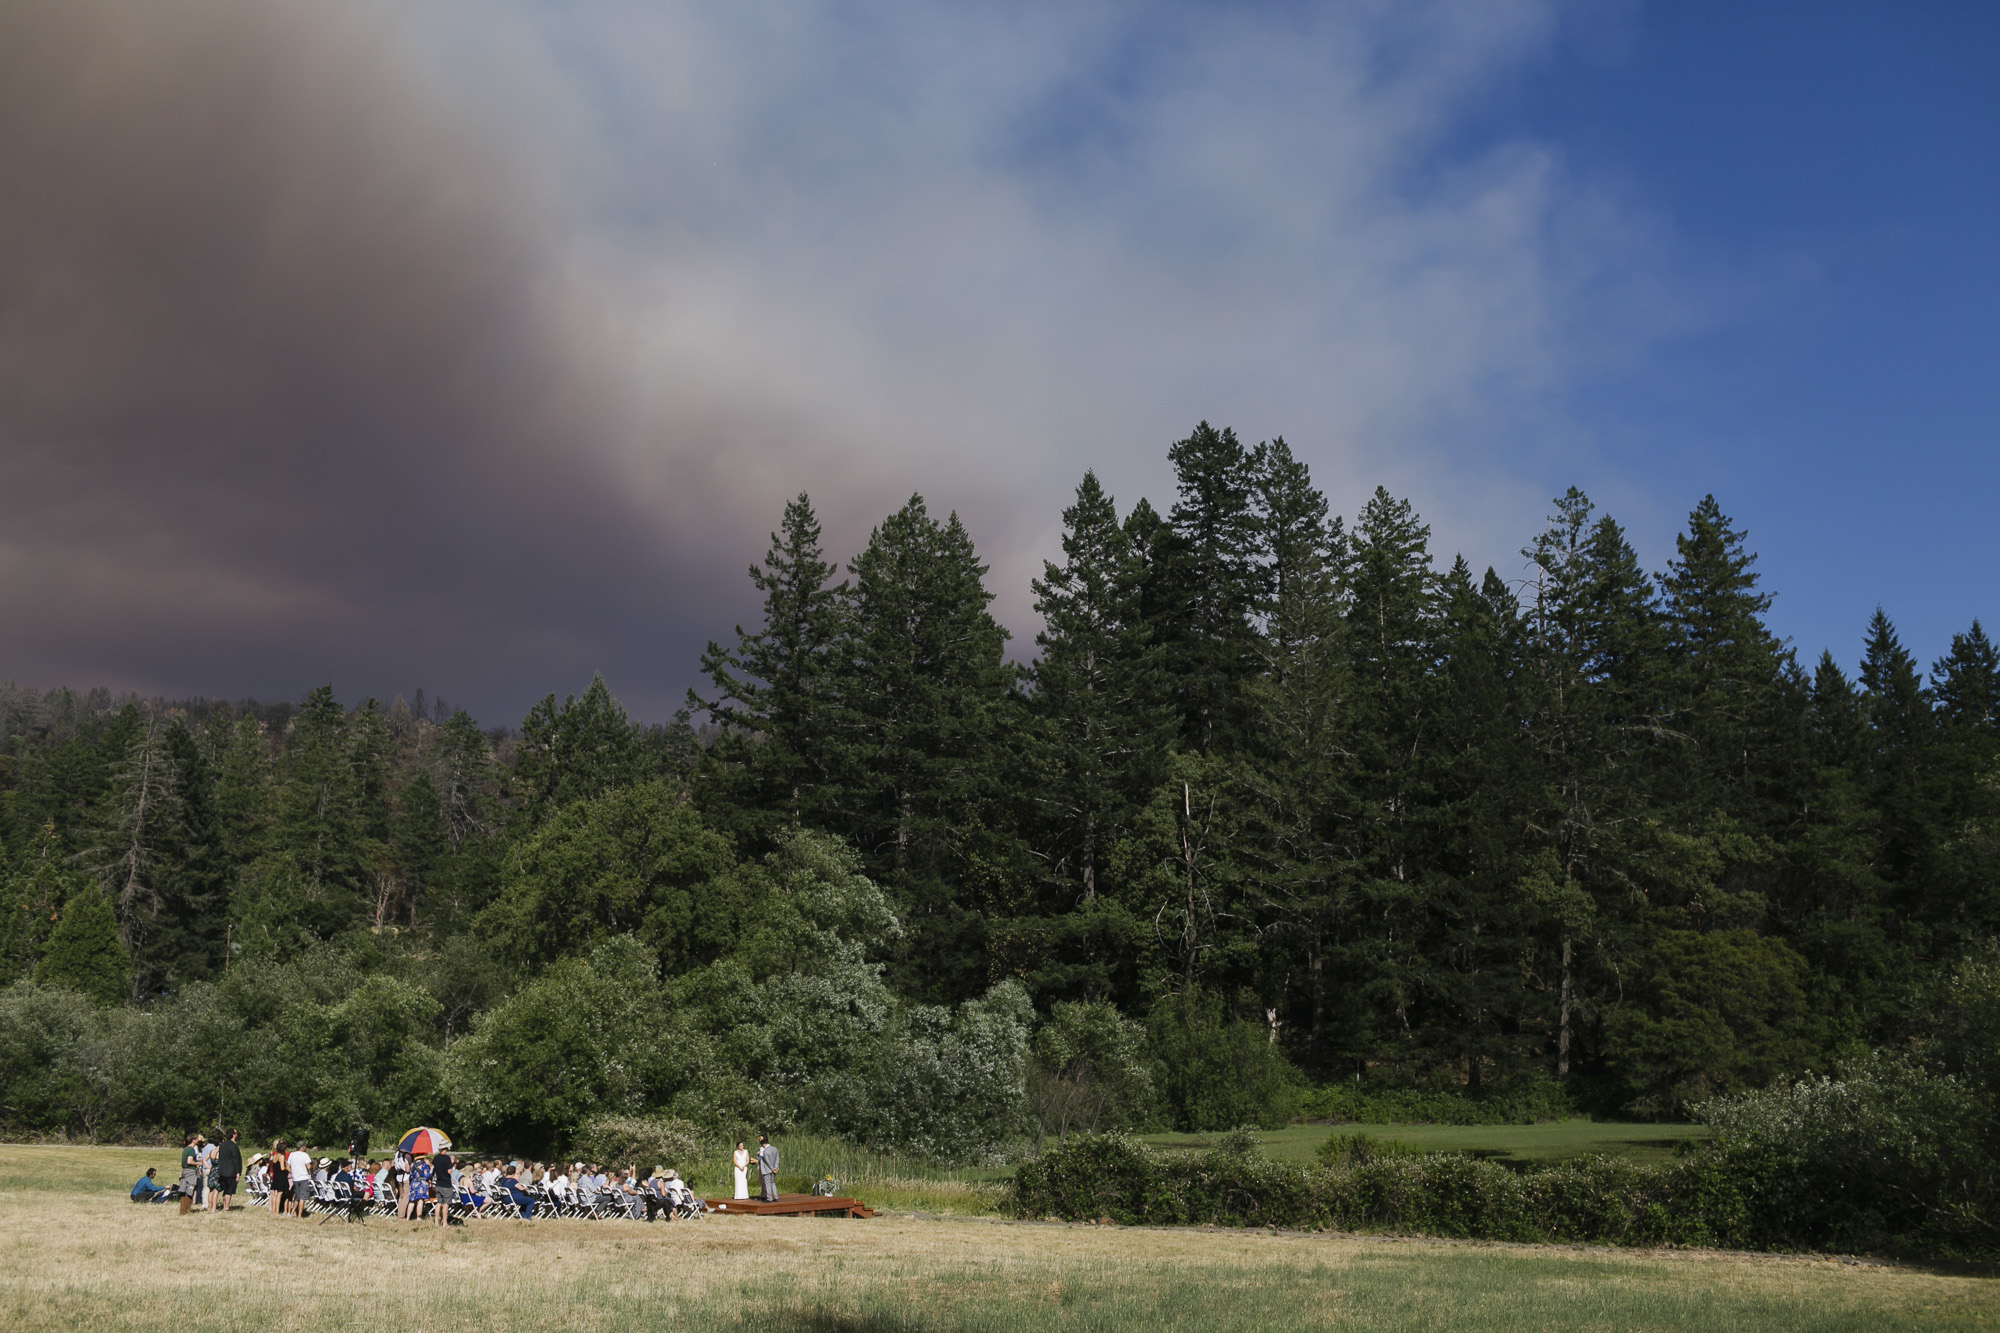 Sunny wedding ceremony in a field with wildfire smoke approaching